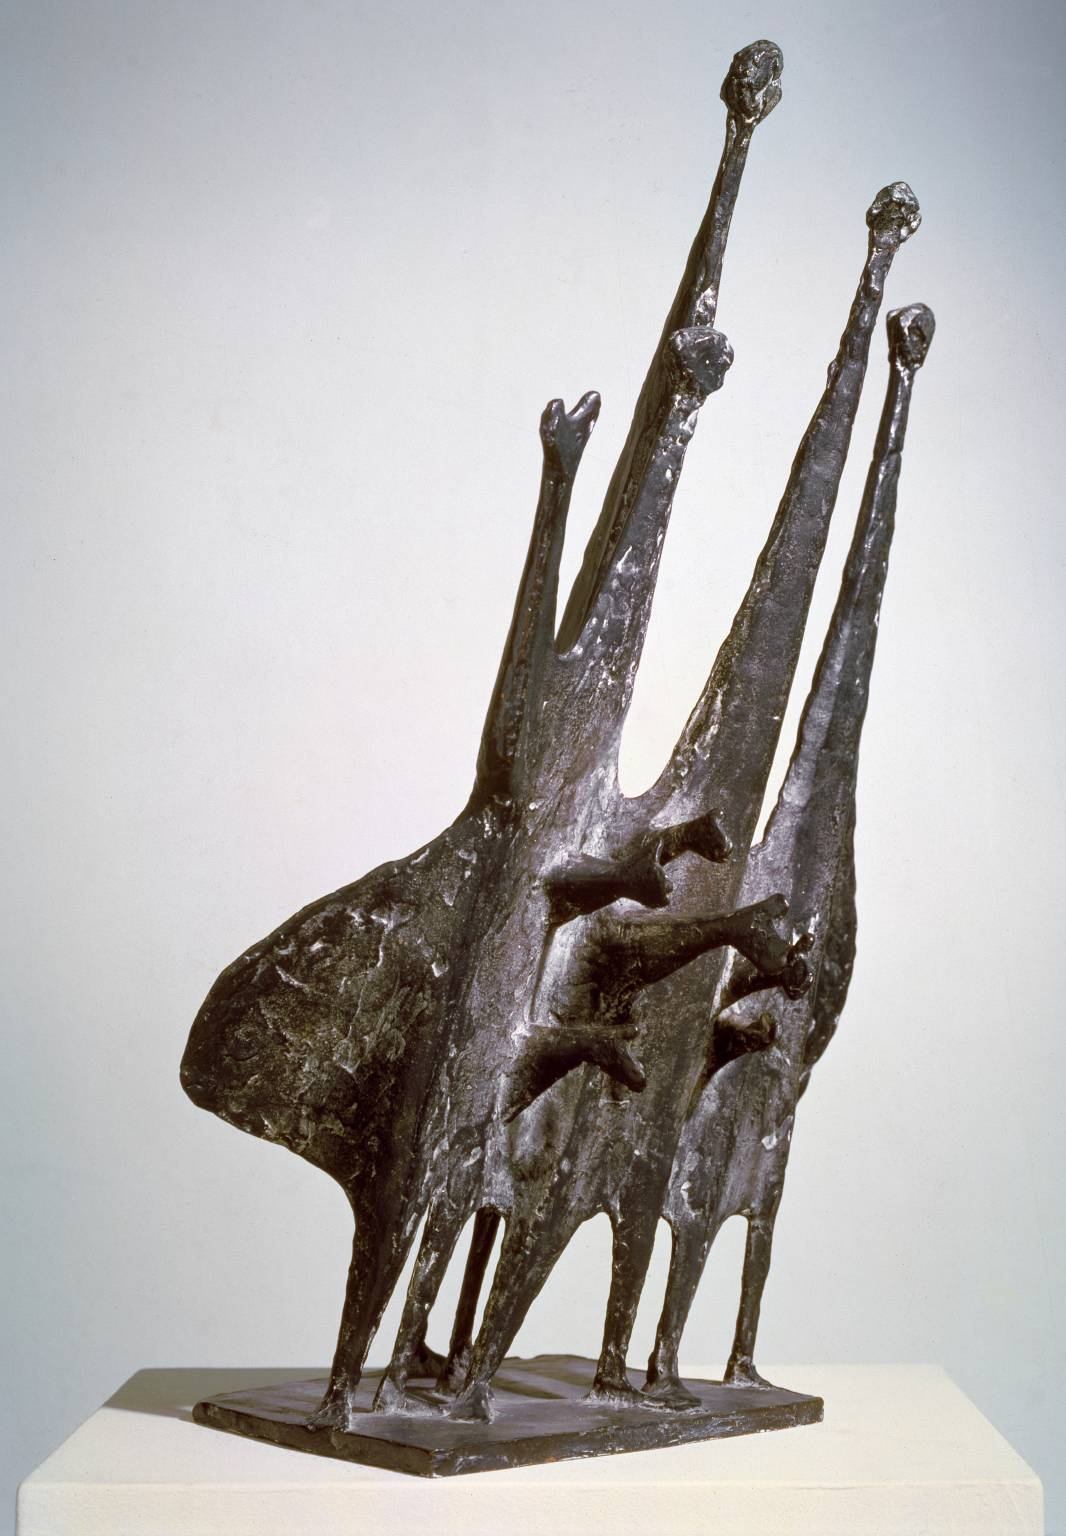 Kenneth Armitage, 'People in the Wind' 1950